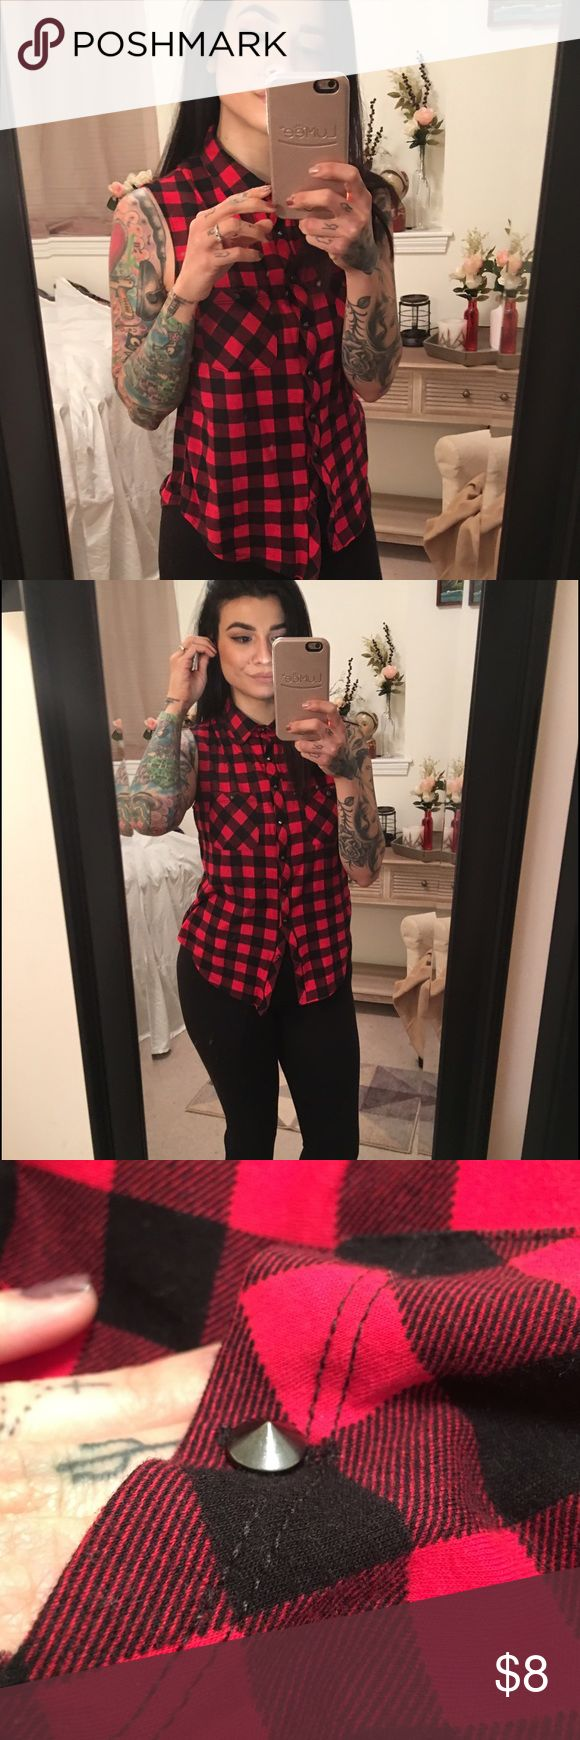 Red plaid cut off shirt Red and black cut off shirt. With STUDDED spike buttons. Size S/M stretchy material. Never worn No Boundaries Tops Muscle Tees